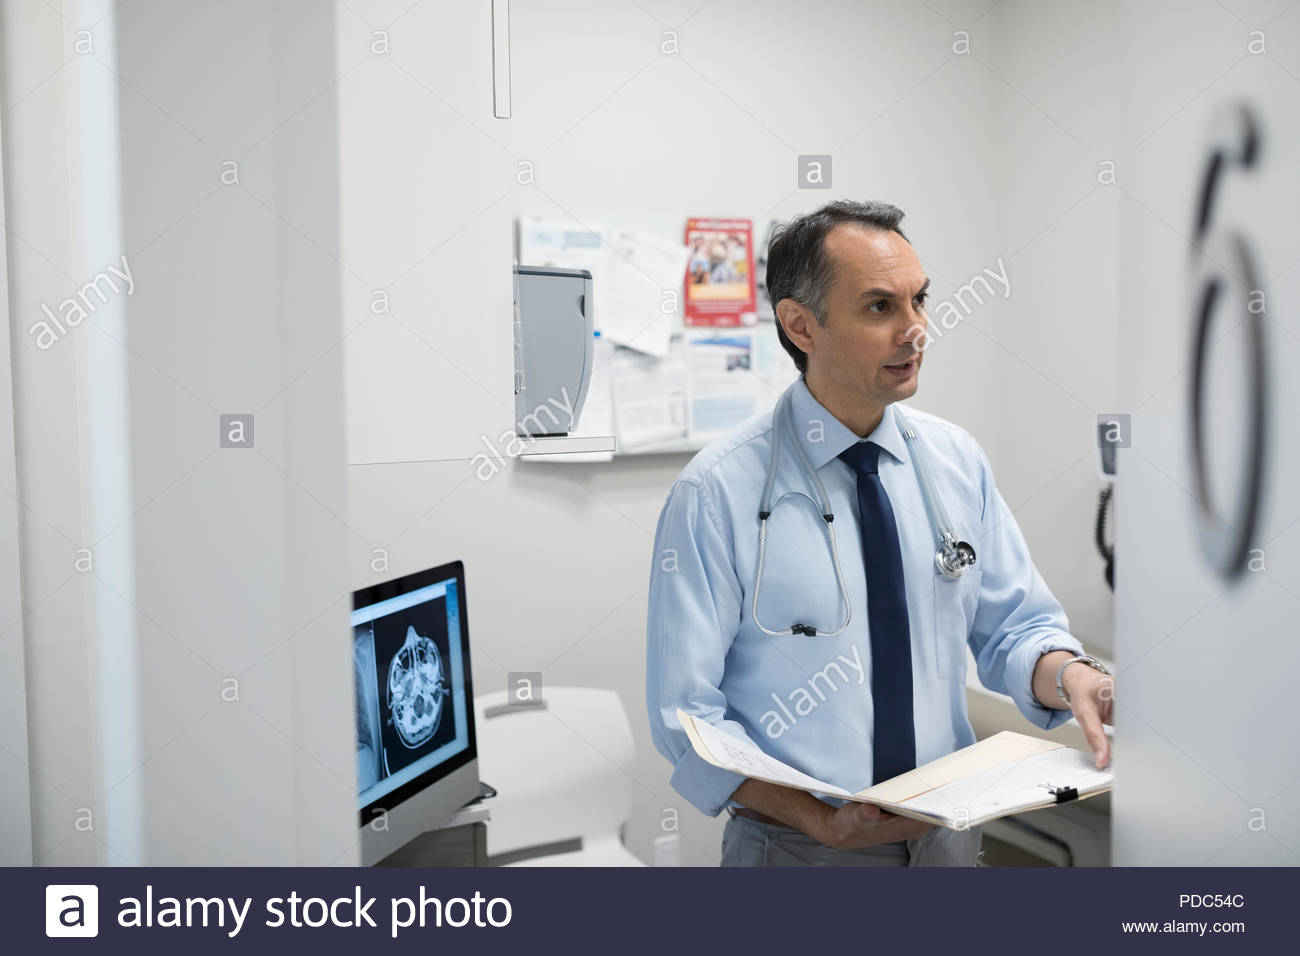 Male doctor discussing medical record in clinic exam room - Stock Image